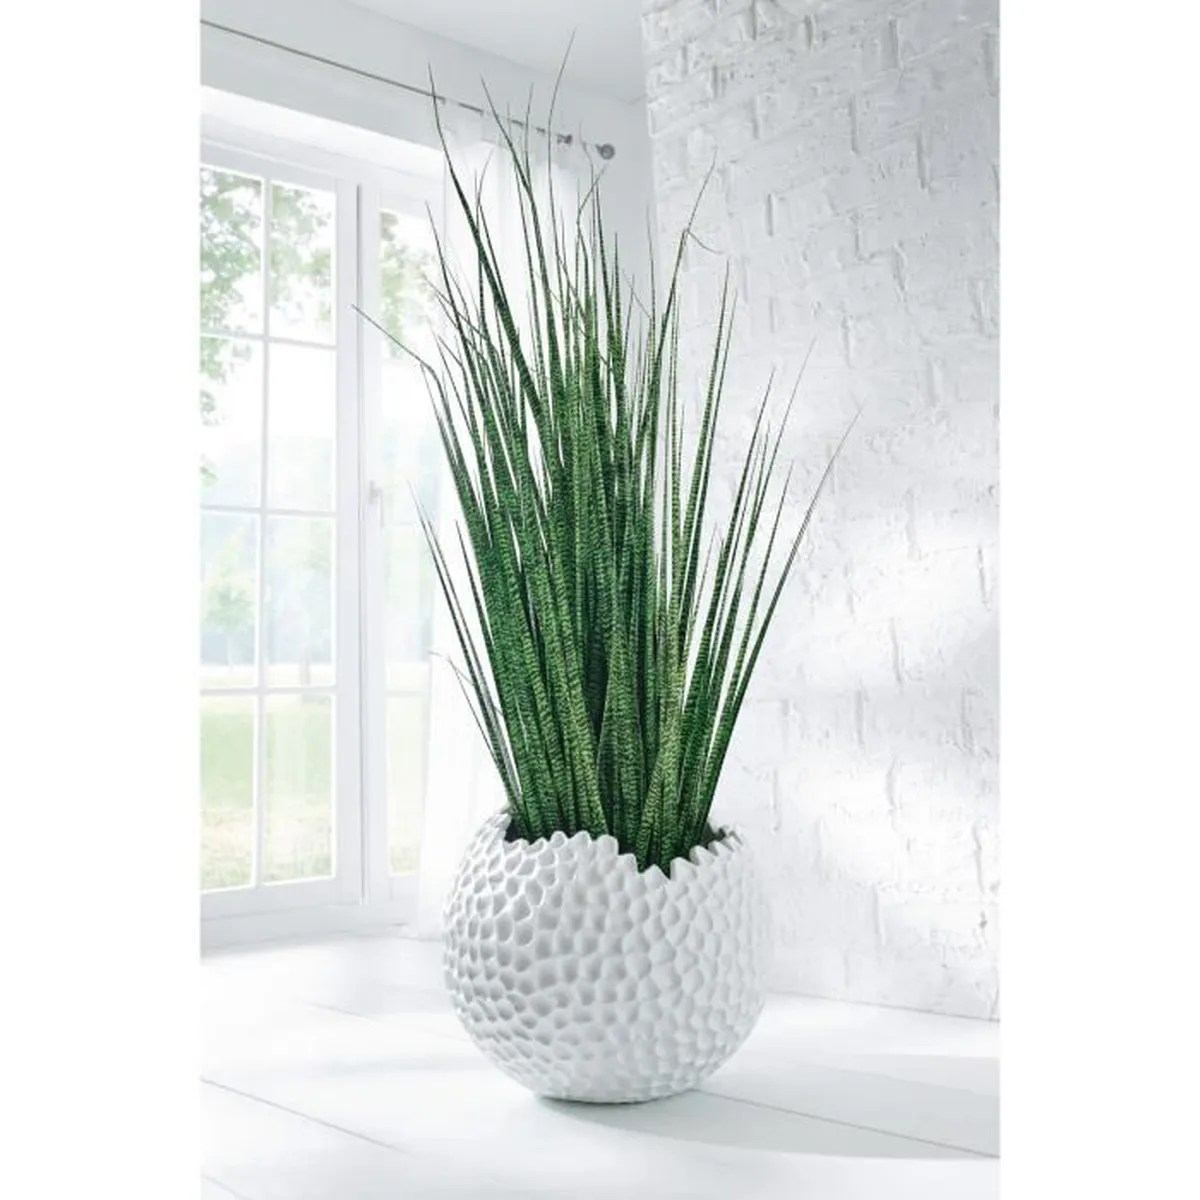 Cdiscount Salon De Jardin Pureday Cache-pot Pour Plantes, Surface Originale, En